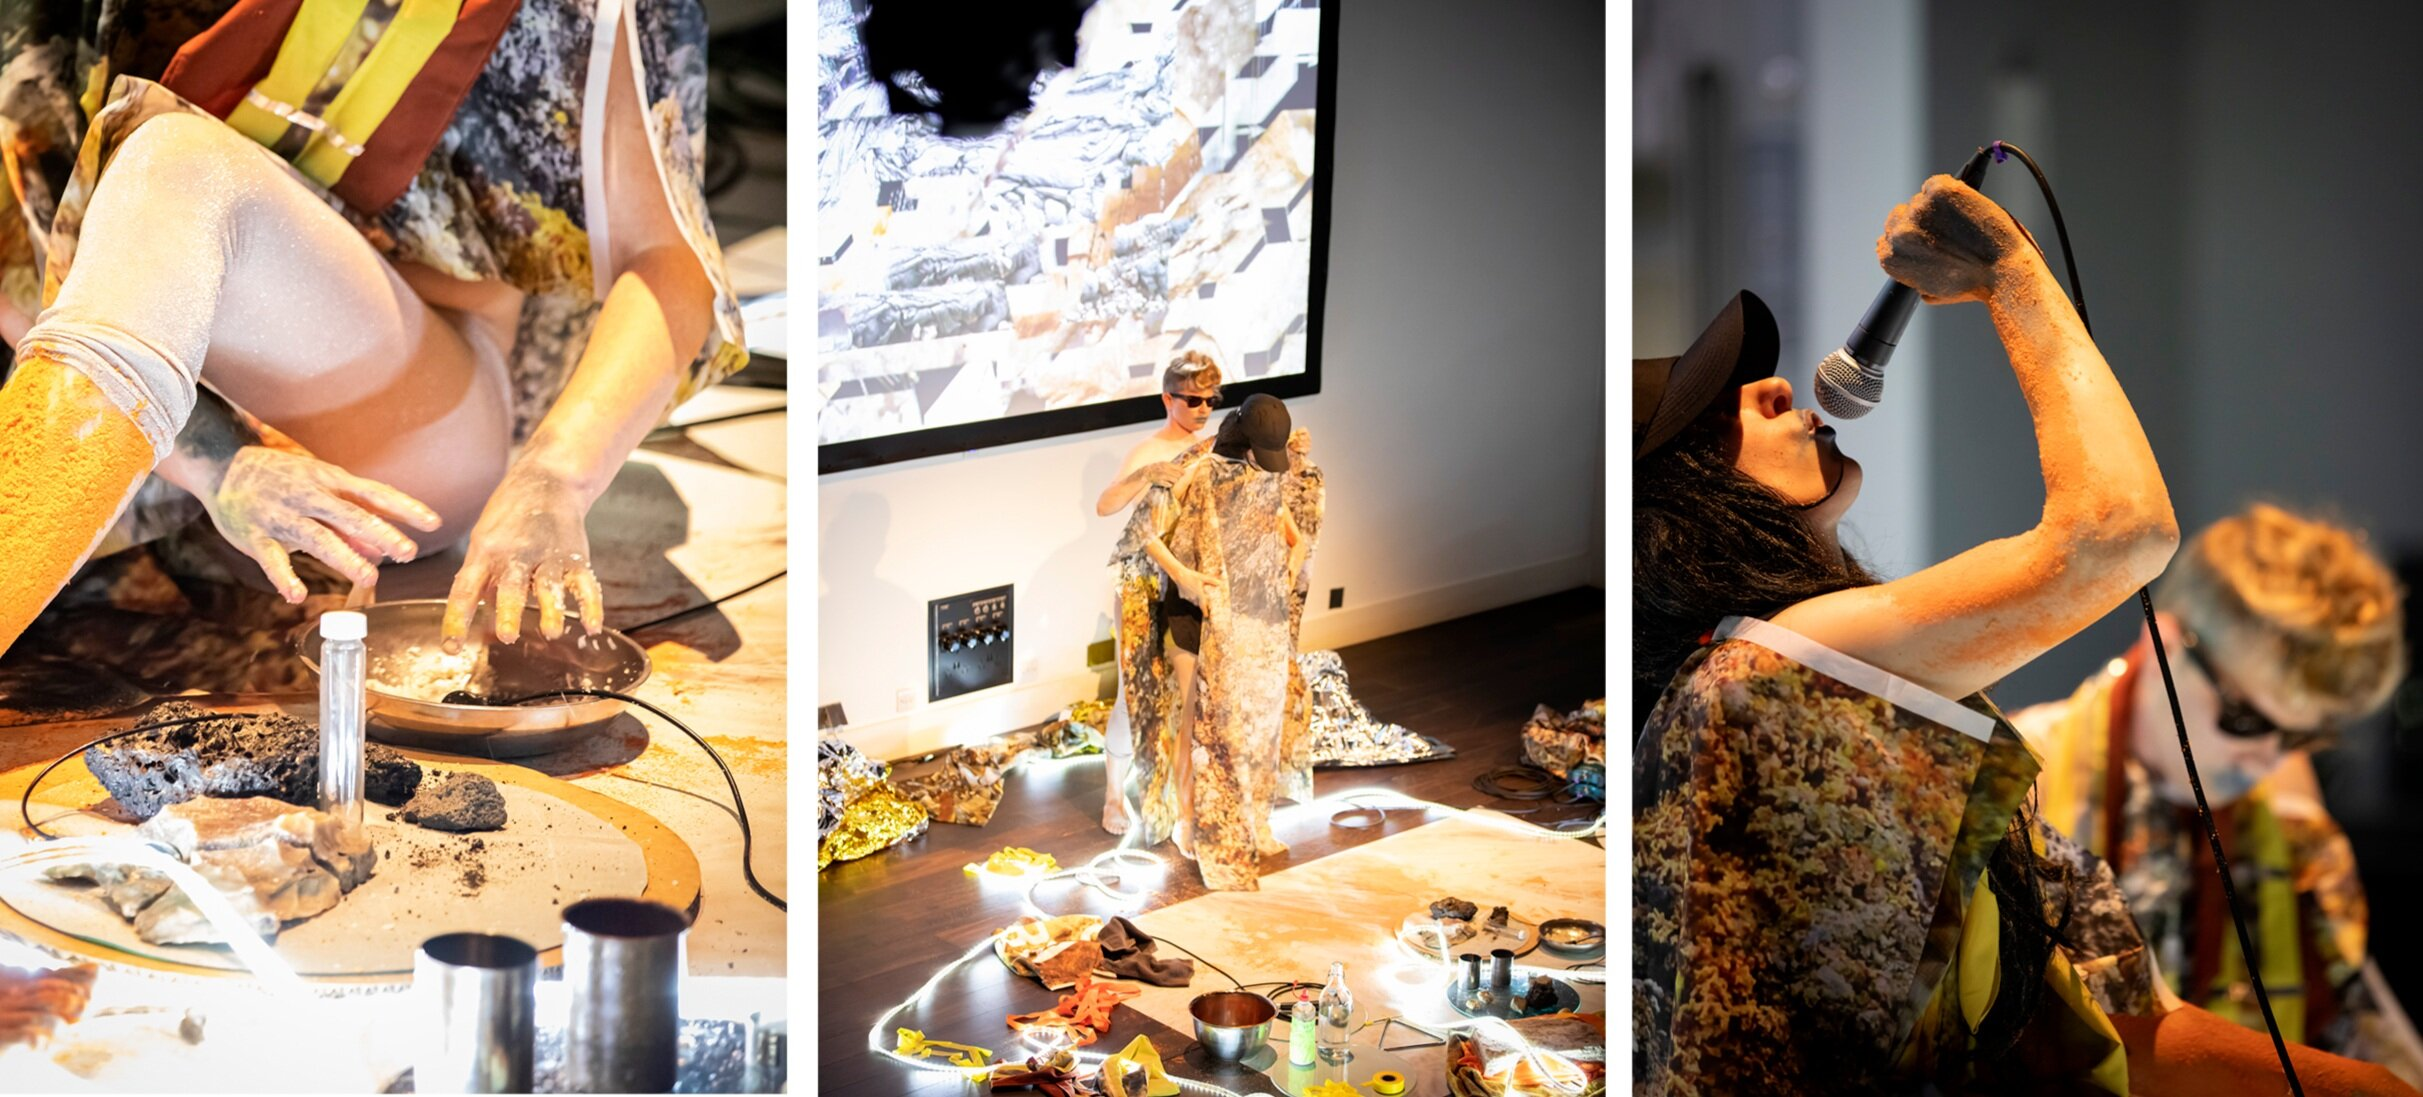 S (Sulfur)  . 2019. Science Gallery, London.  Rachel Pimm  and Lori E Allen. .  Video, live performance and sound.  Photos by George Torode.